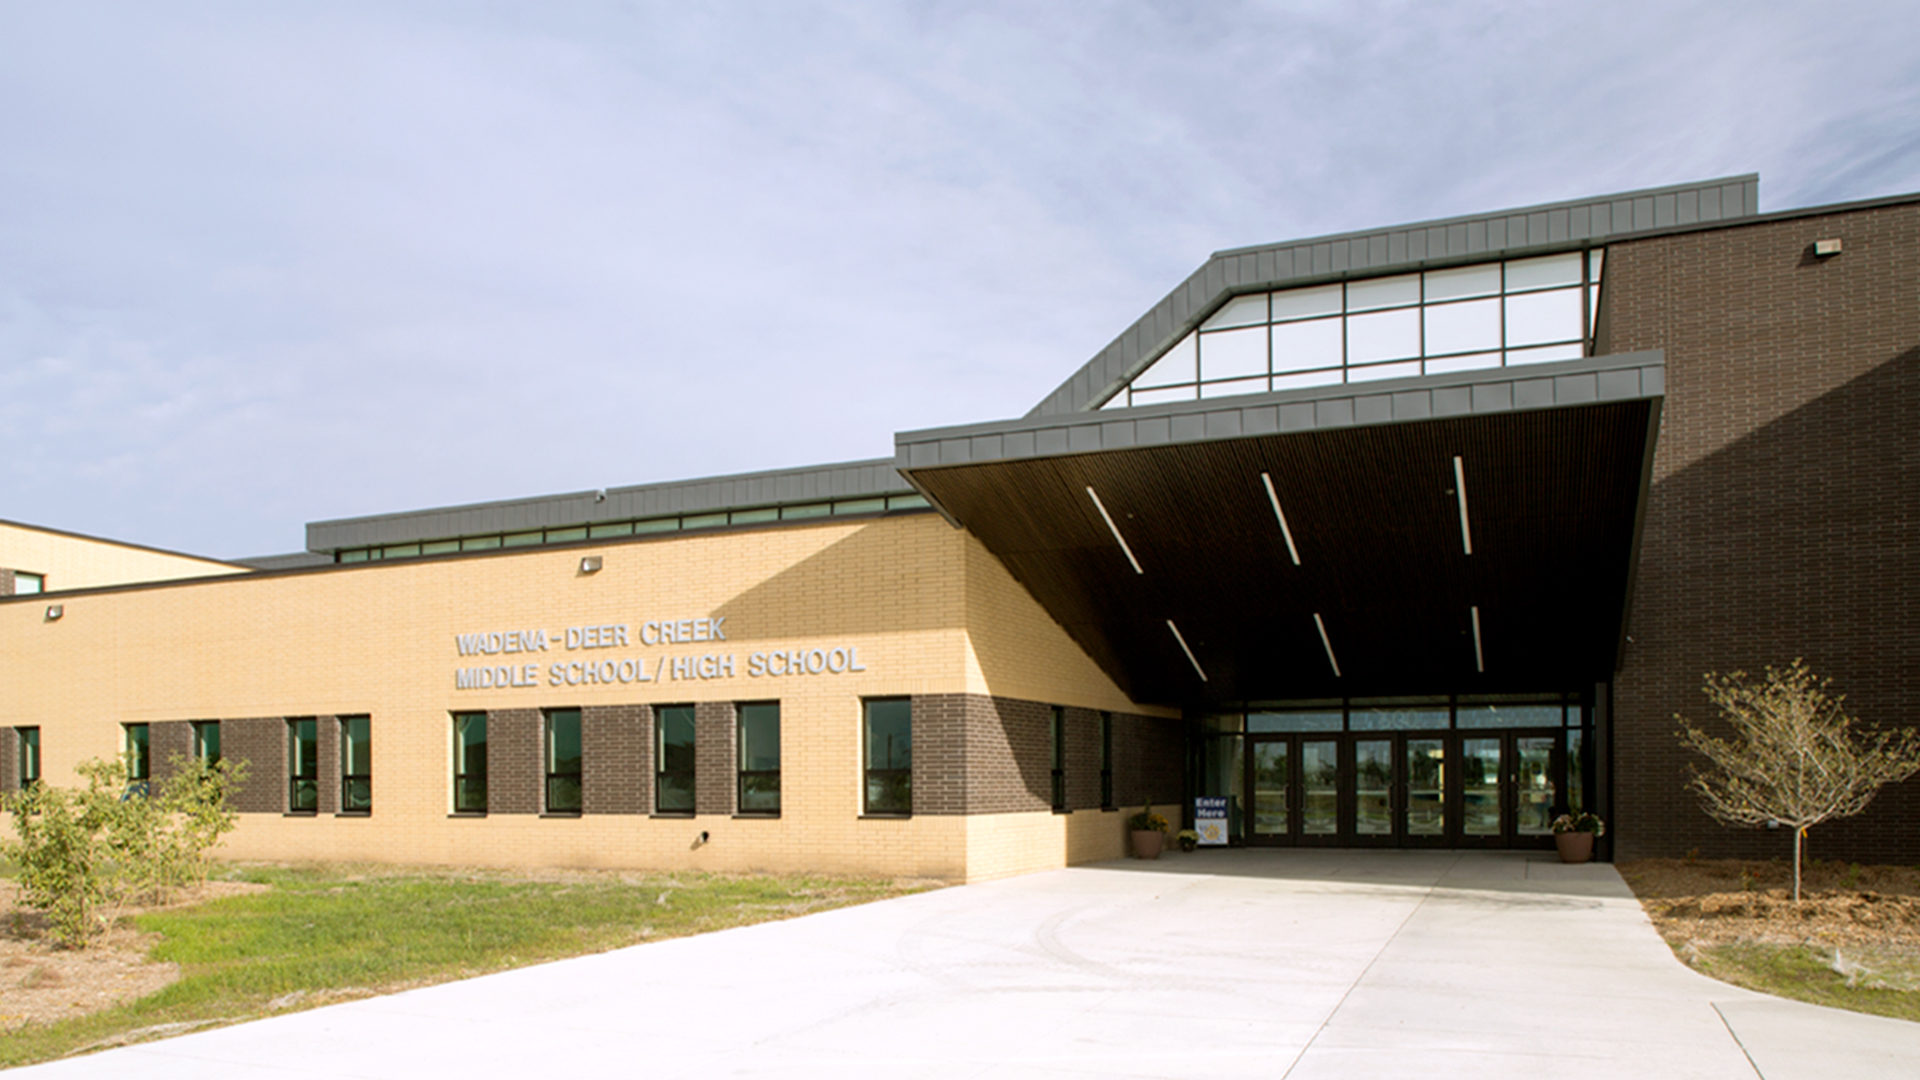 Wadena-Deer Creek Middle School-High School Wadena MN Exterior Close Up Entrance View